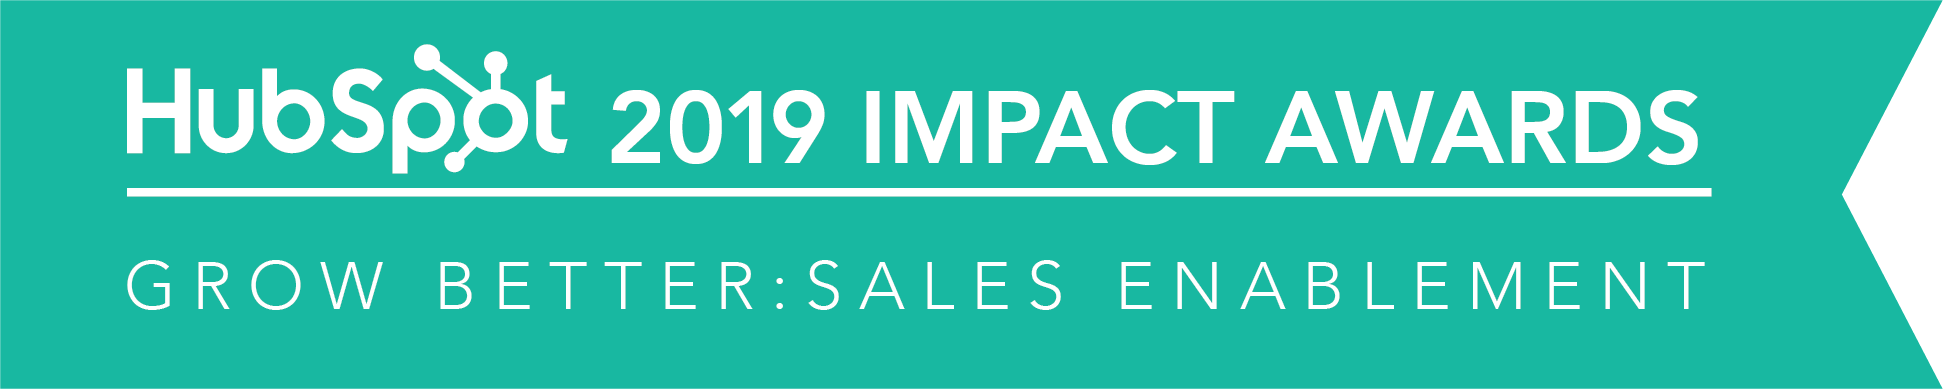 Hubspot_ImpactAwards_2019_SalesEnablement-02-3